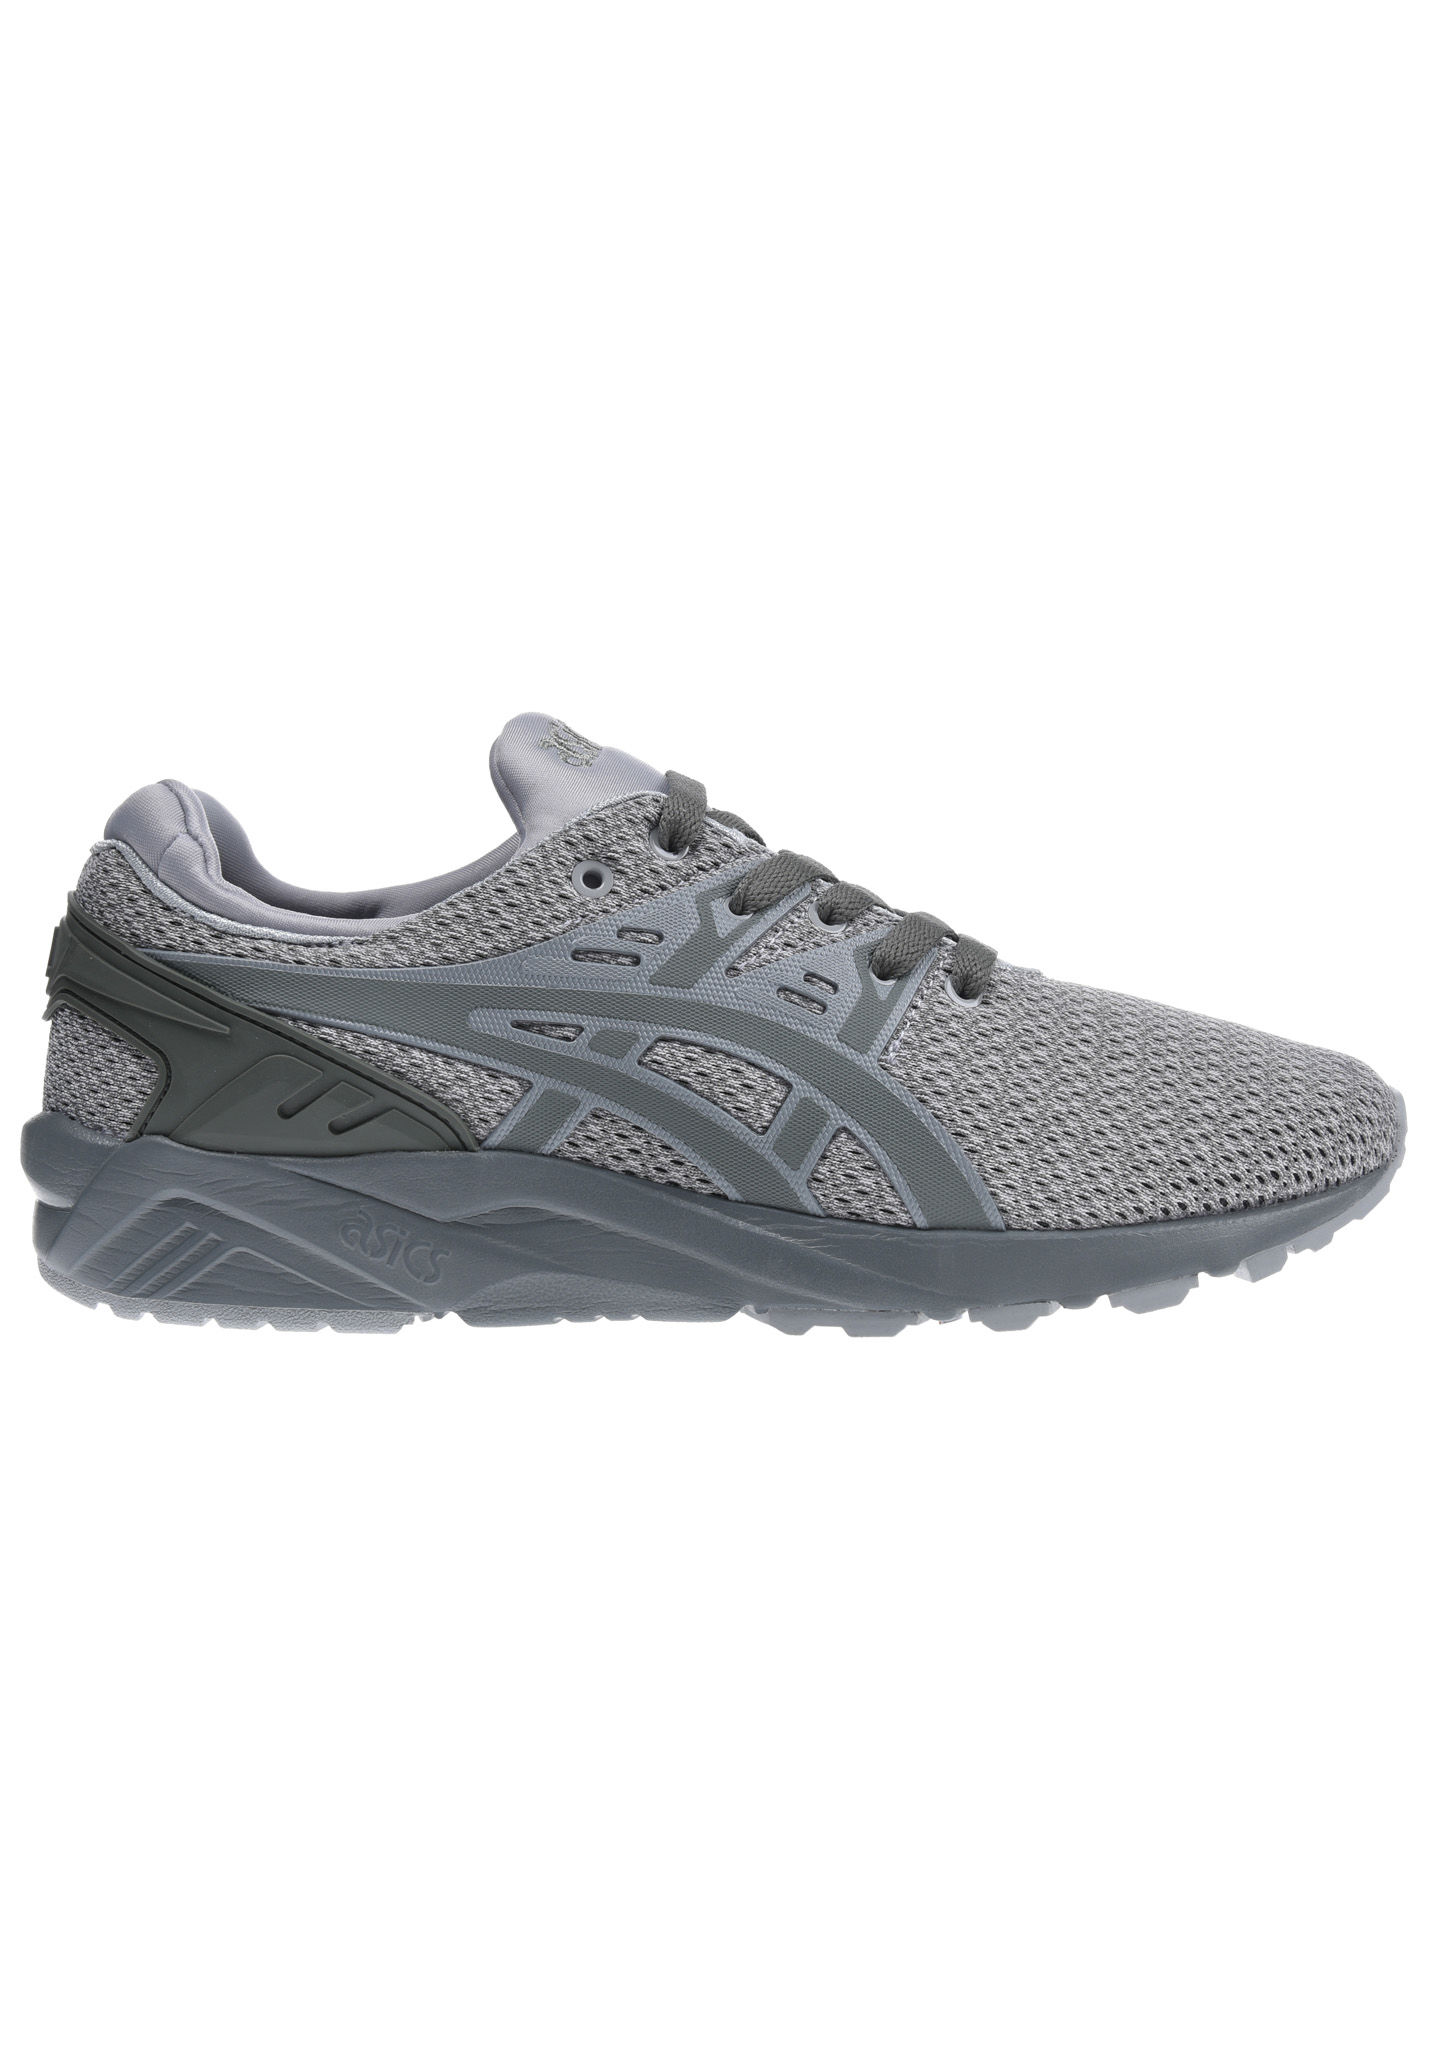 12a845d170f asics-tiger-gel-kayano-trainer-evo-zapatillas-hombres-gris.jpg